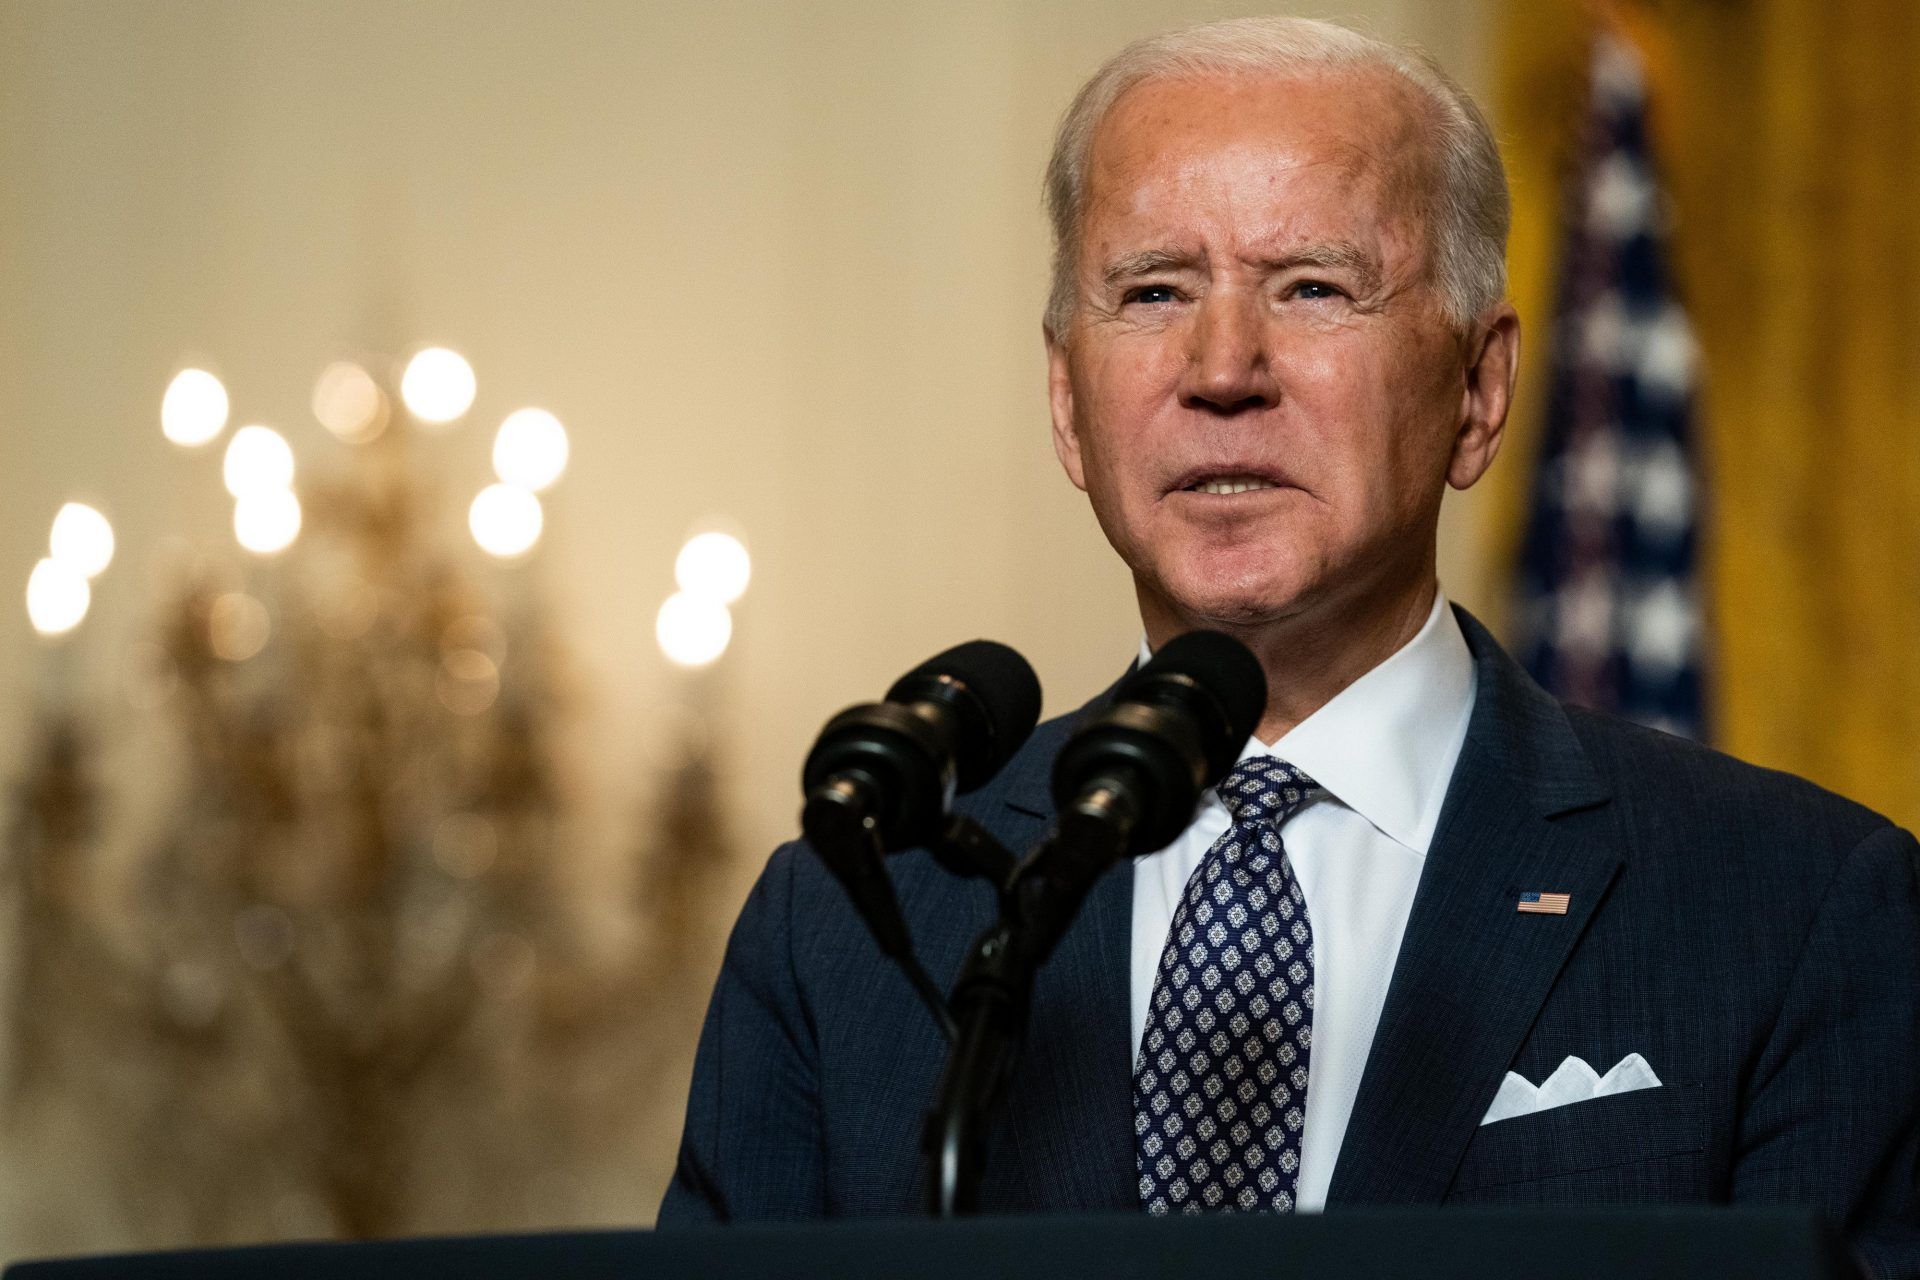 Biden's New PPP Rules: Only Small or Minority-Owned Companies Can Apply for 2 Weeks